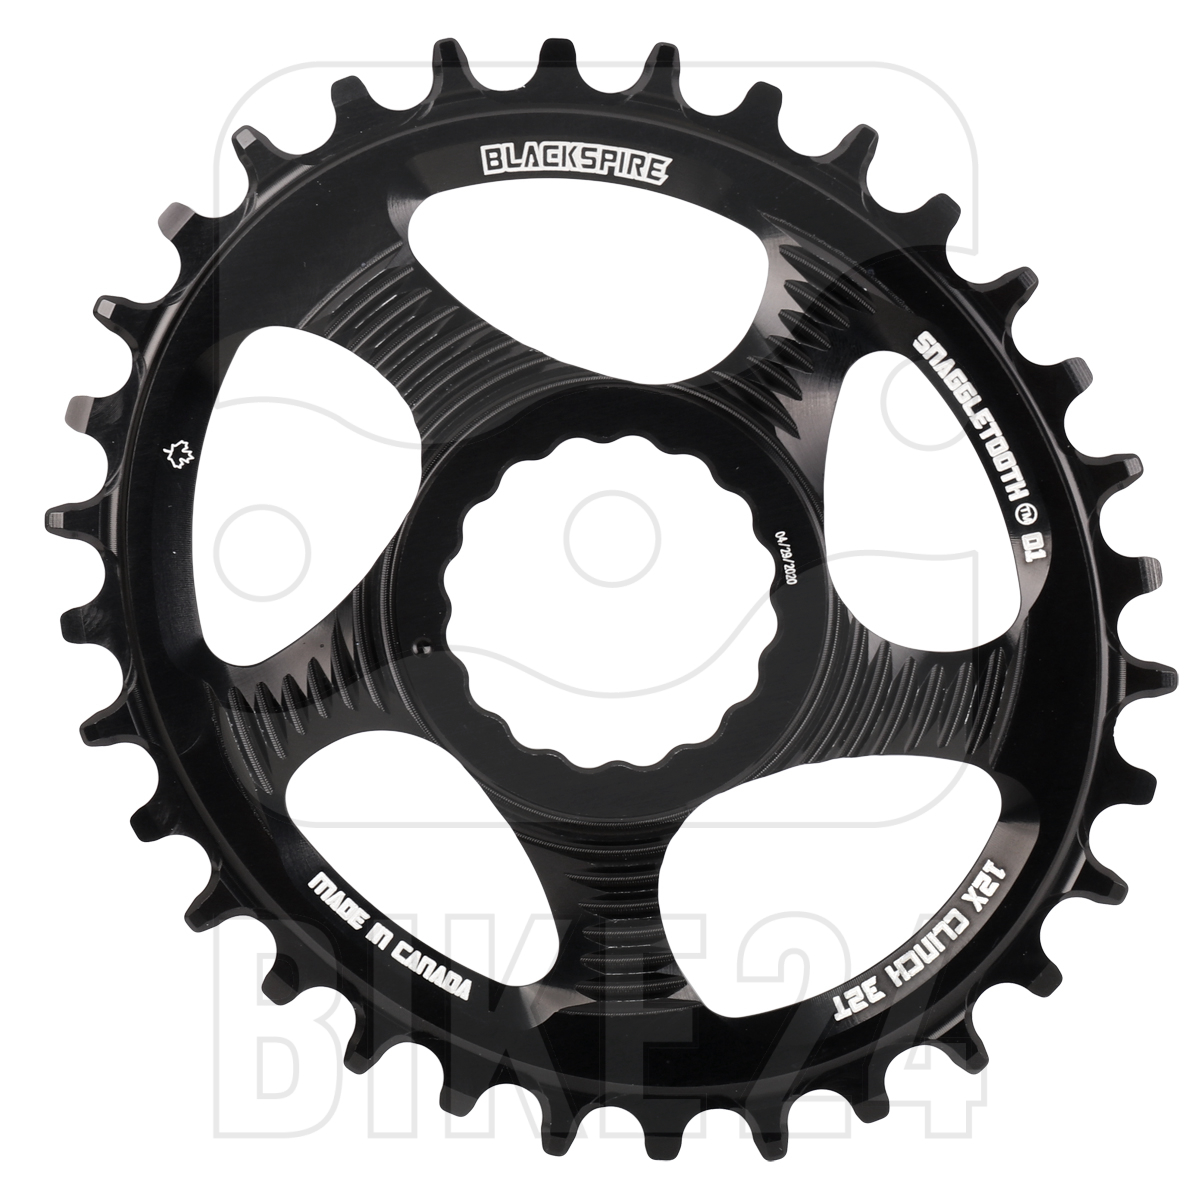 Blackspire Snaggletooth Oval Narrow-Wide Direct Mount Chainring - Race Face - black   12-speed